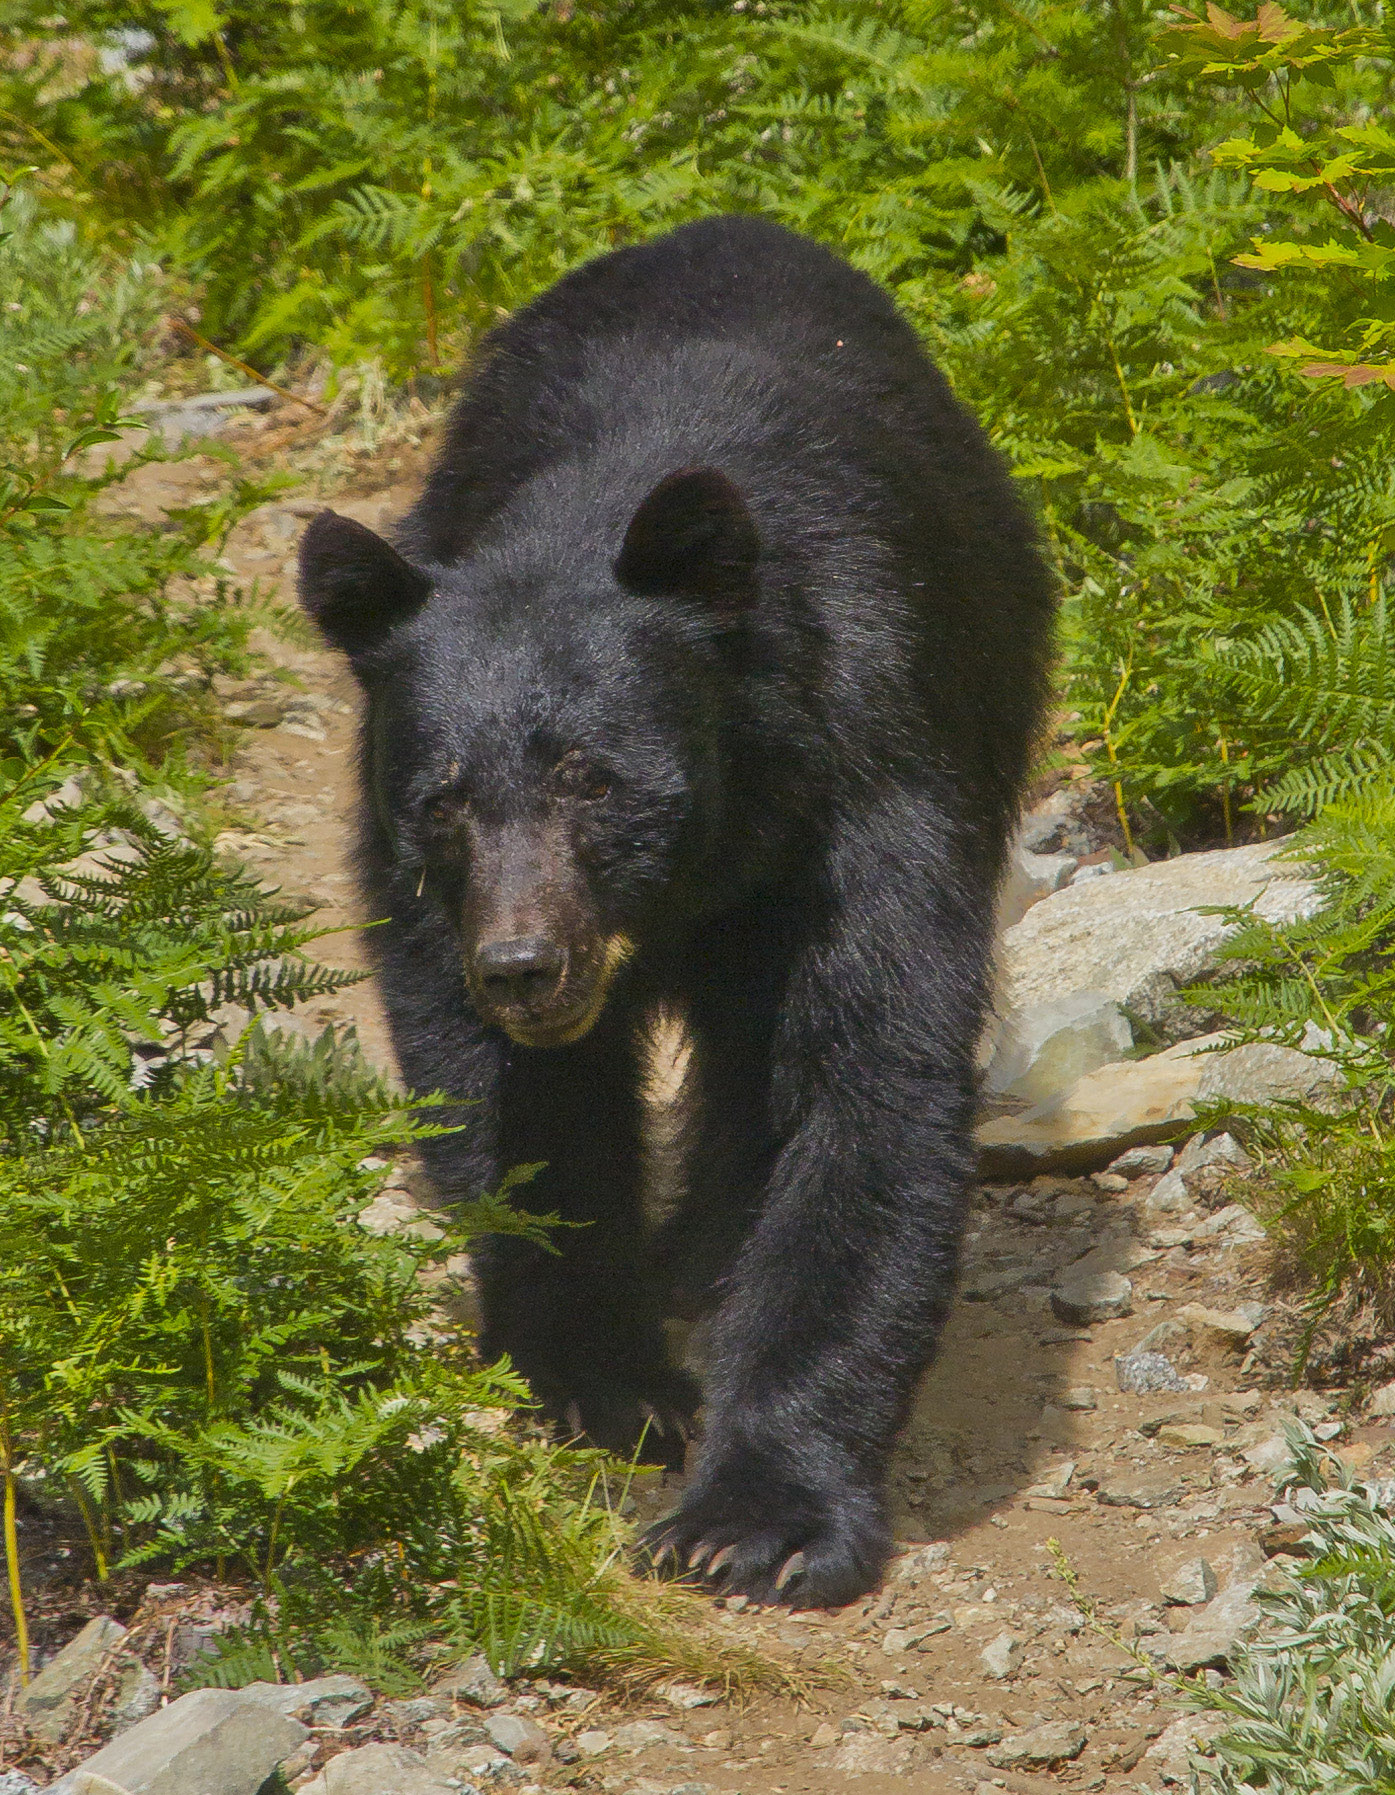 This black bear gets the right-of-way on the trail to Horseshoe Basin in North Cascades National Park, Washington. Photo by Andy Porter via Flickr.